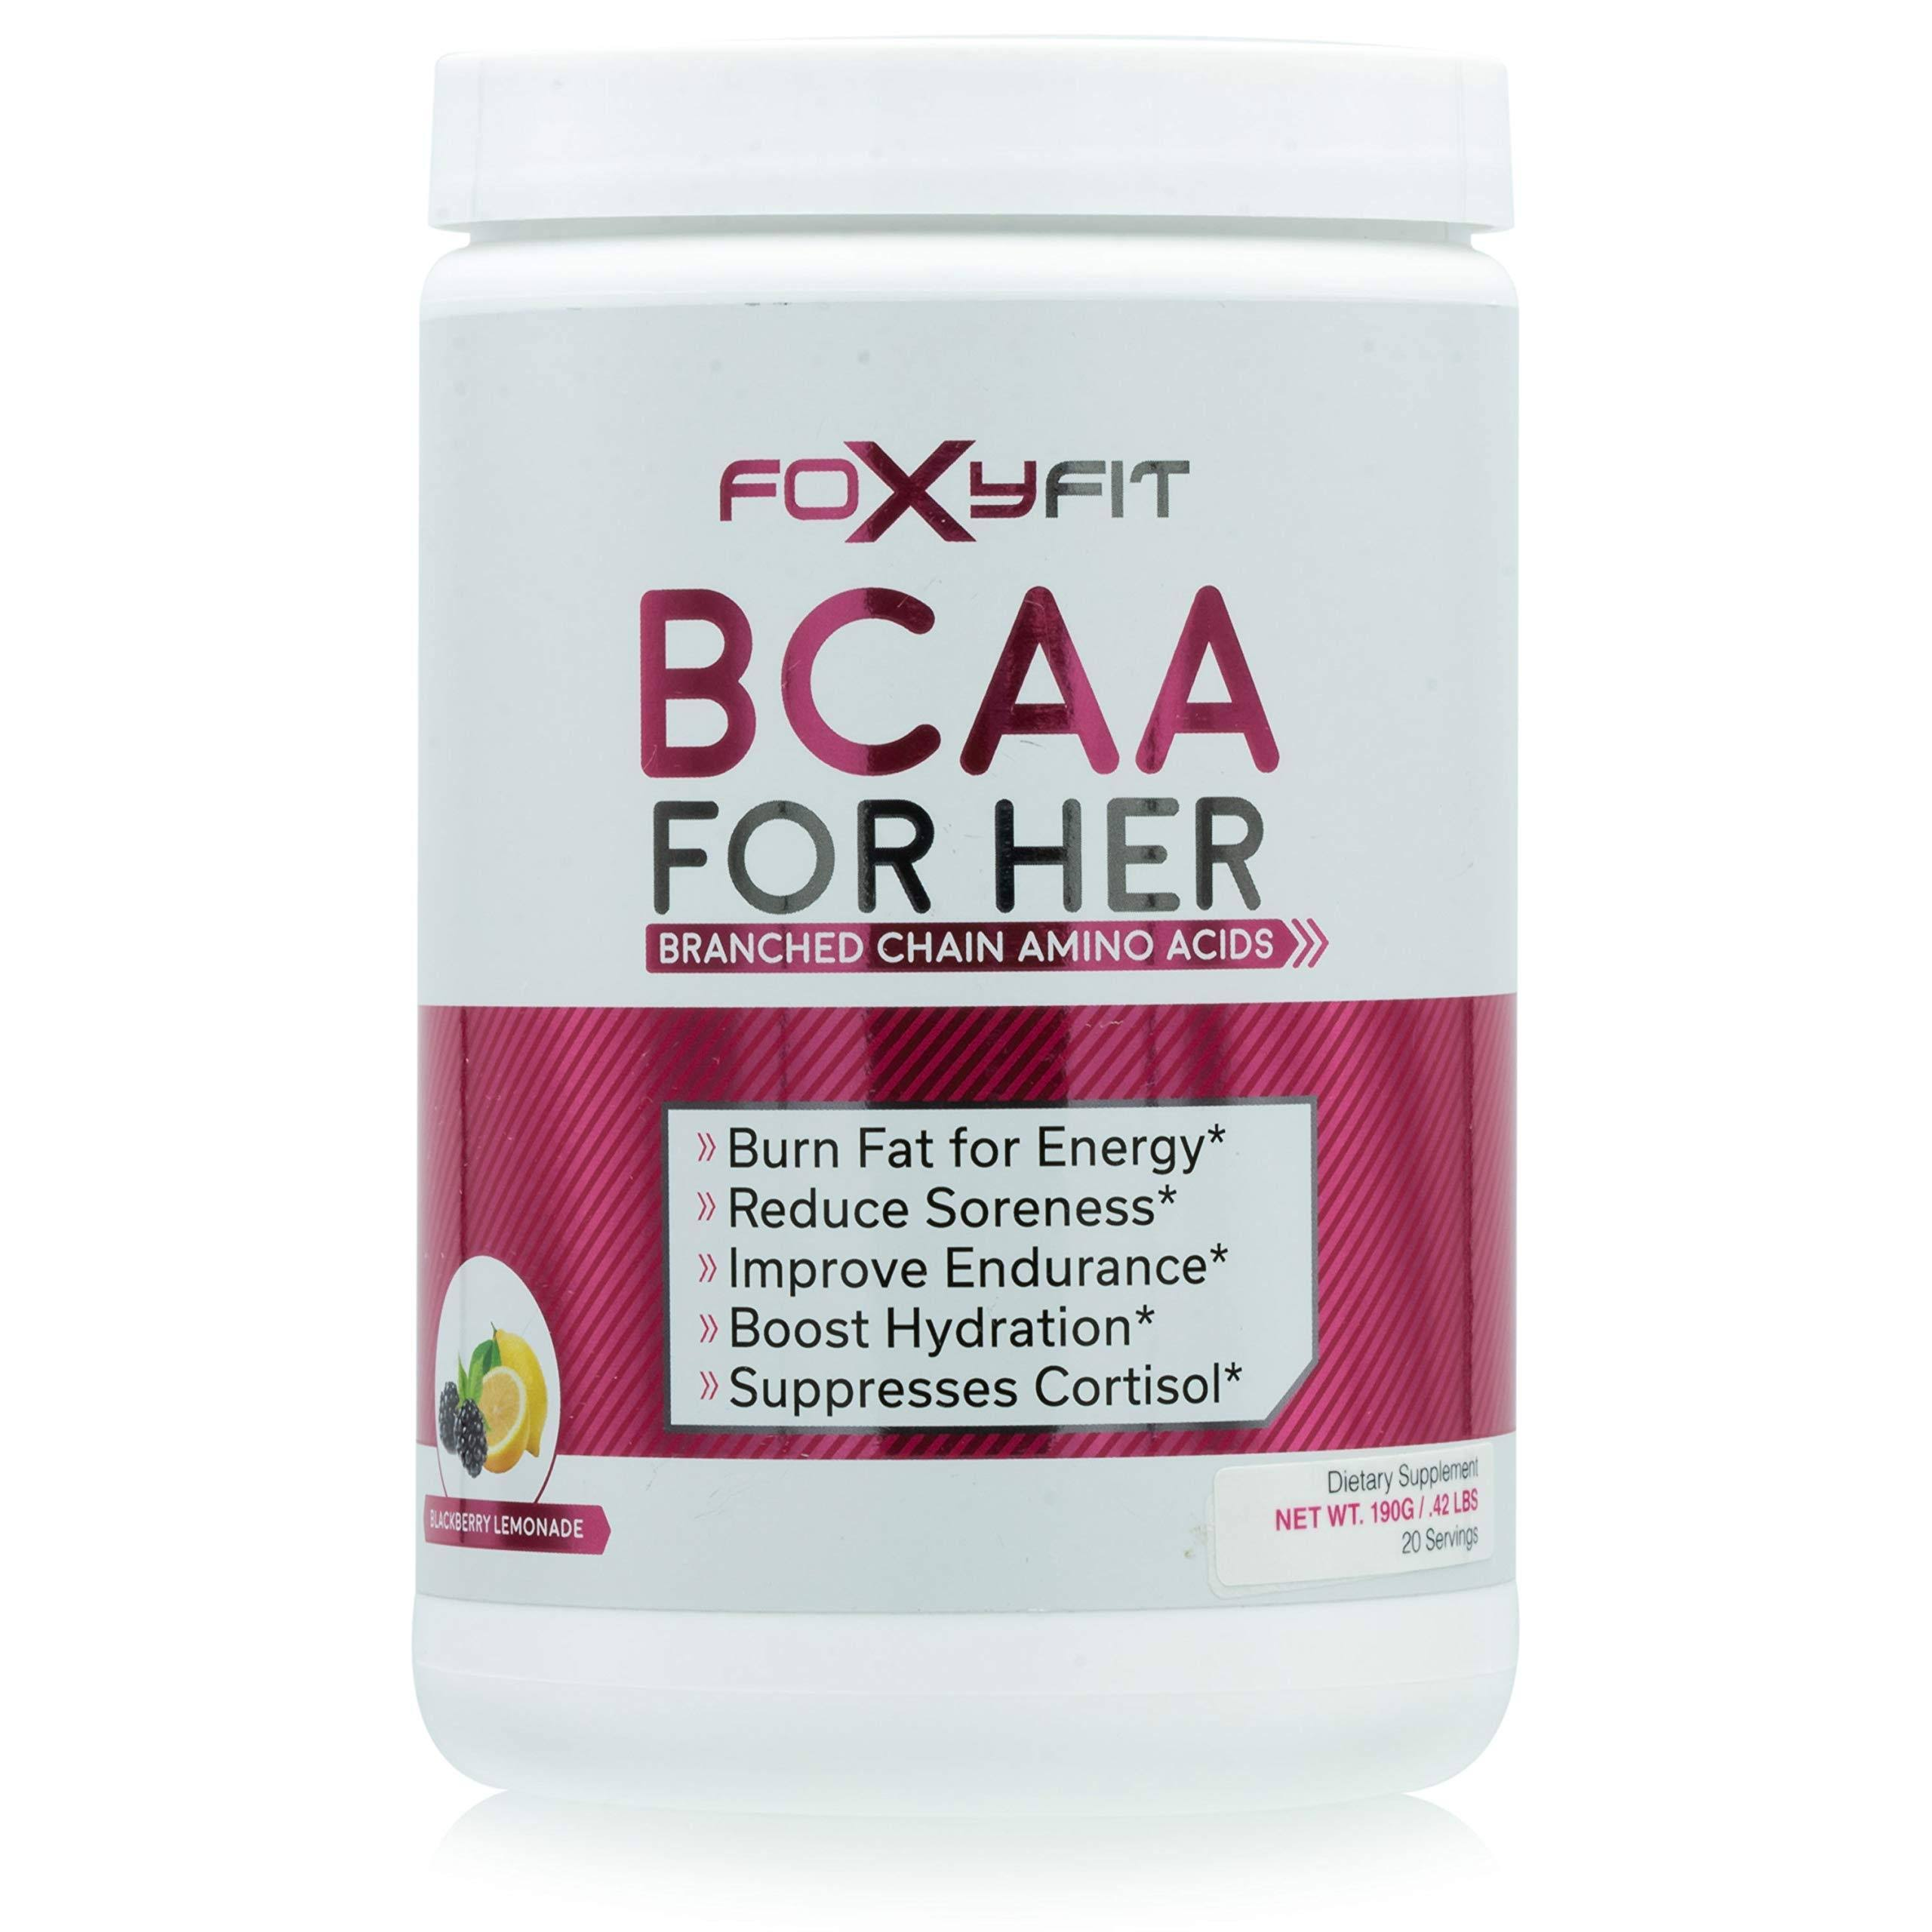 FoxyFit BCAA for Her Branched Chain